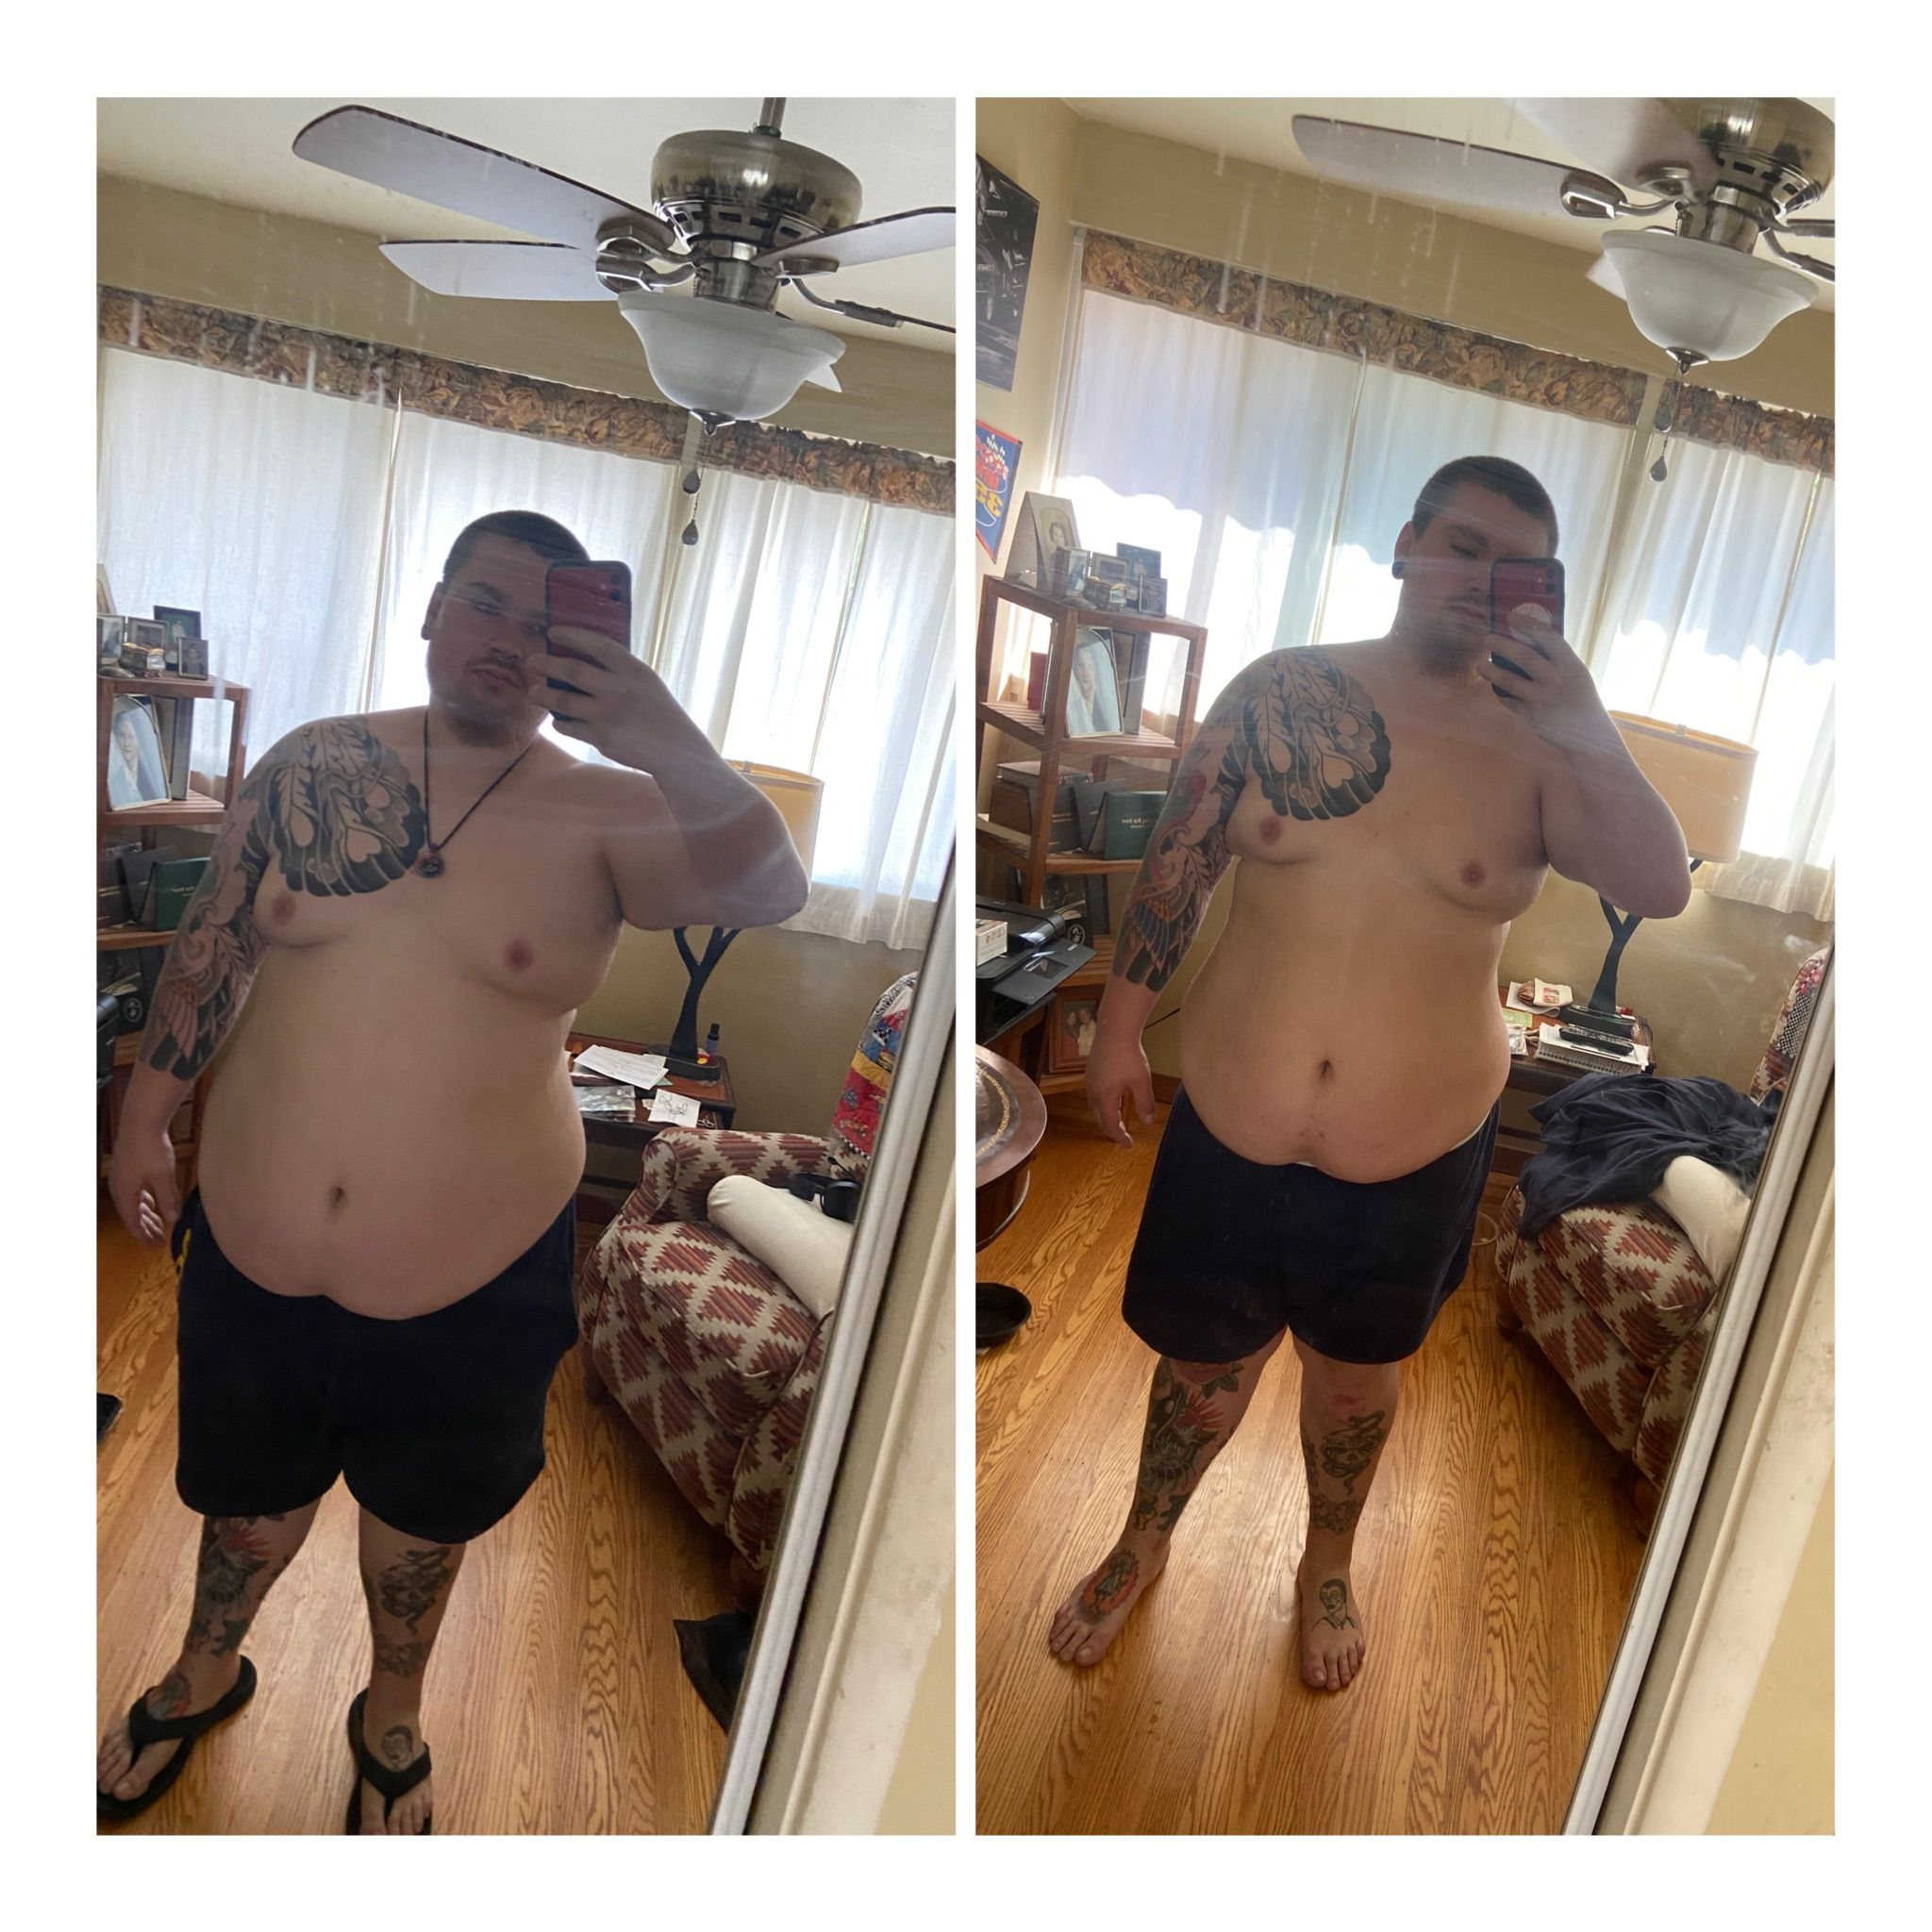 41 lbs Fat Loss Before and After 6 foot 1 Male 340 lbs to 299 lbs